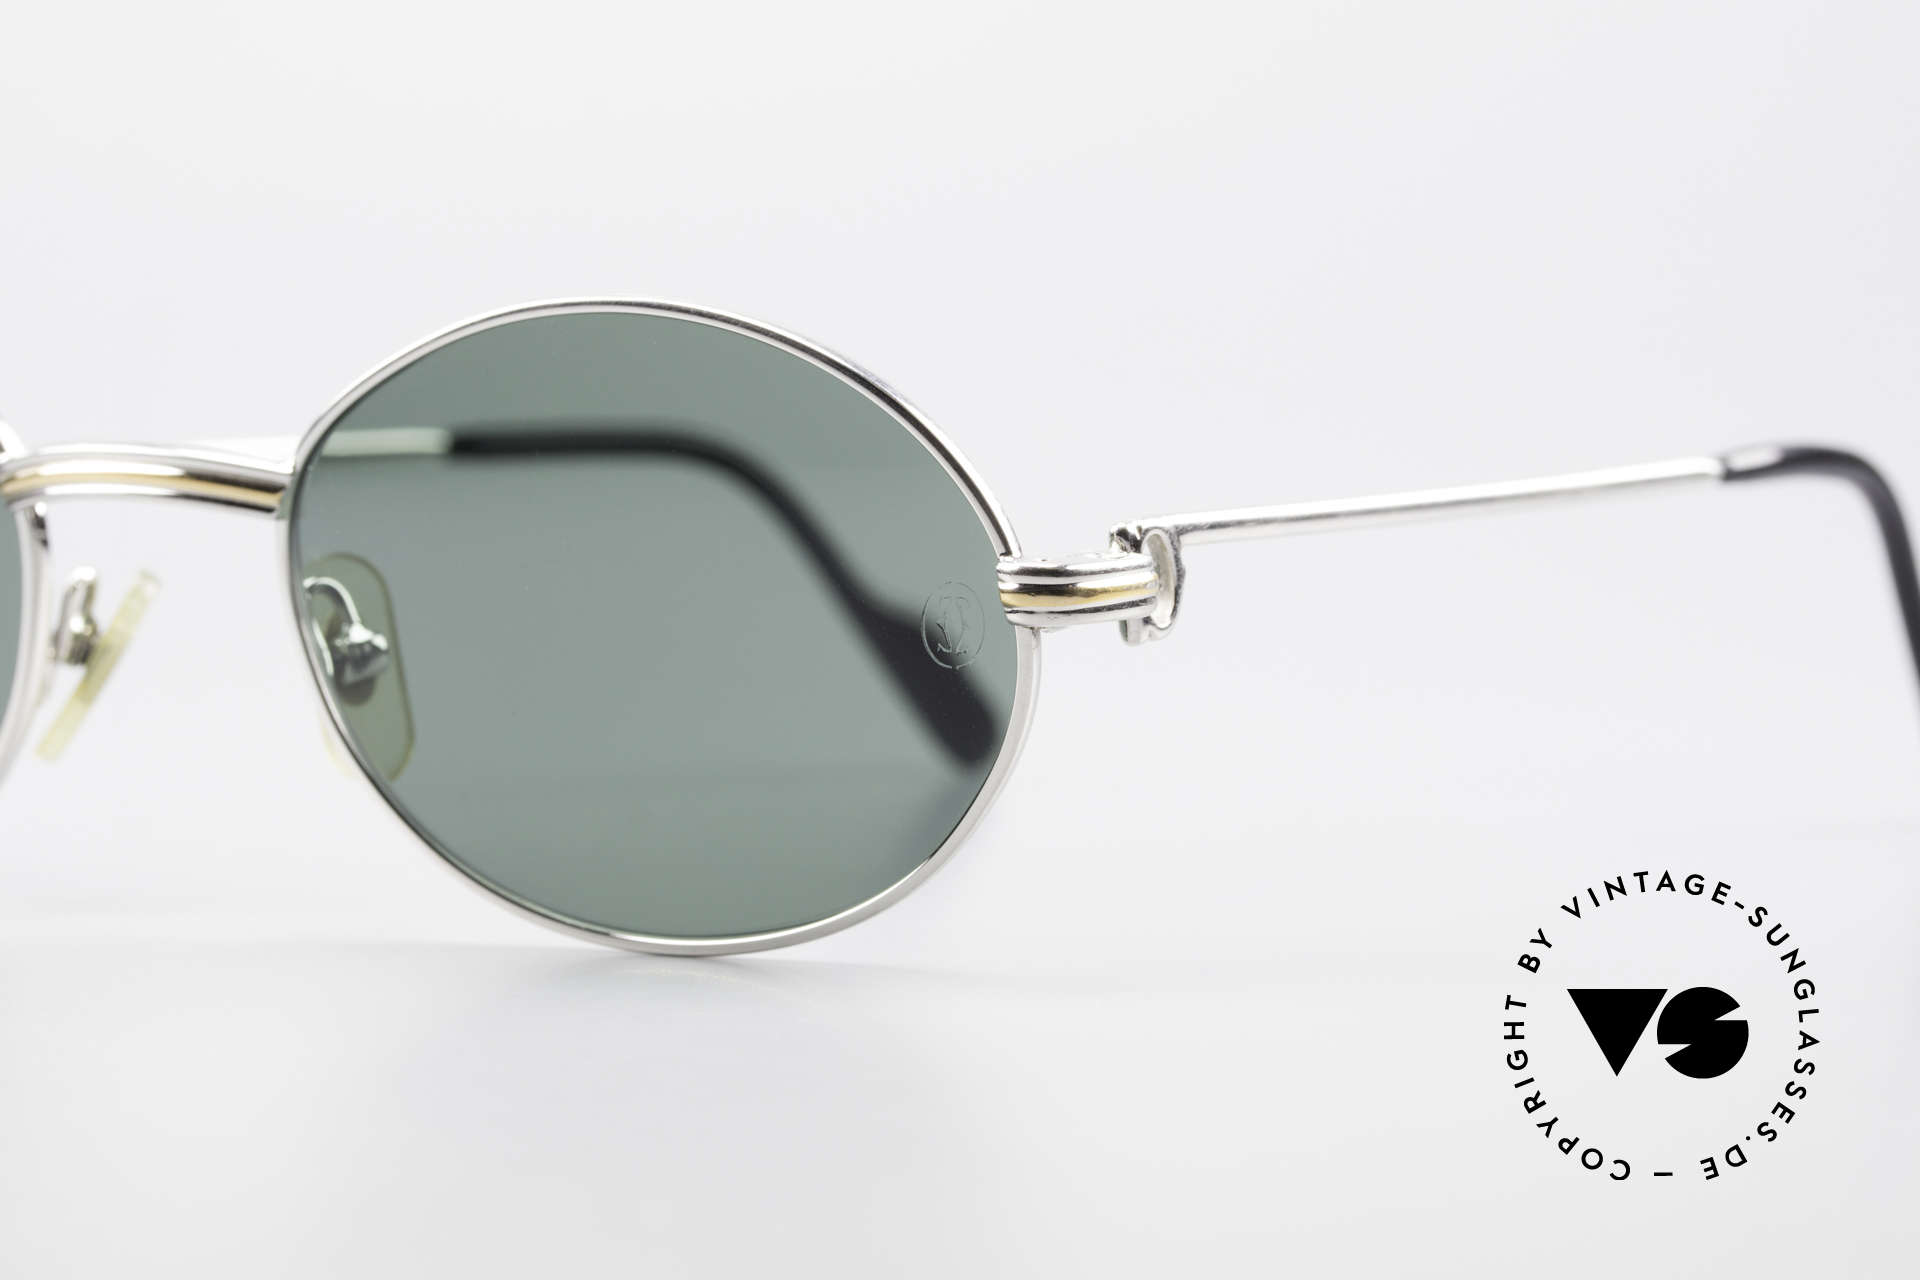 Cartier Saint Honore Oval Luxury Sunglasses 90's, sun lenses with CARTIER-logo (100% UV protection), Made for Men